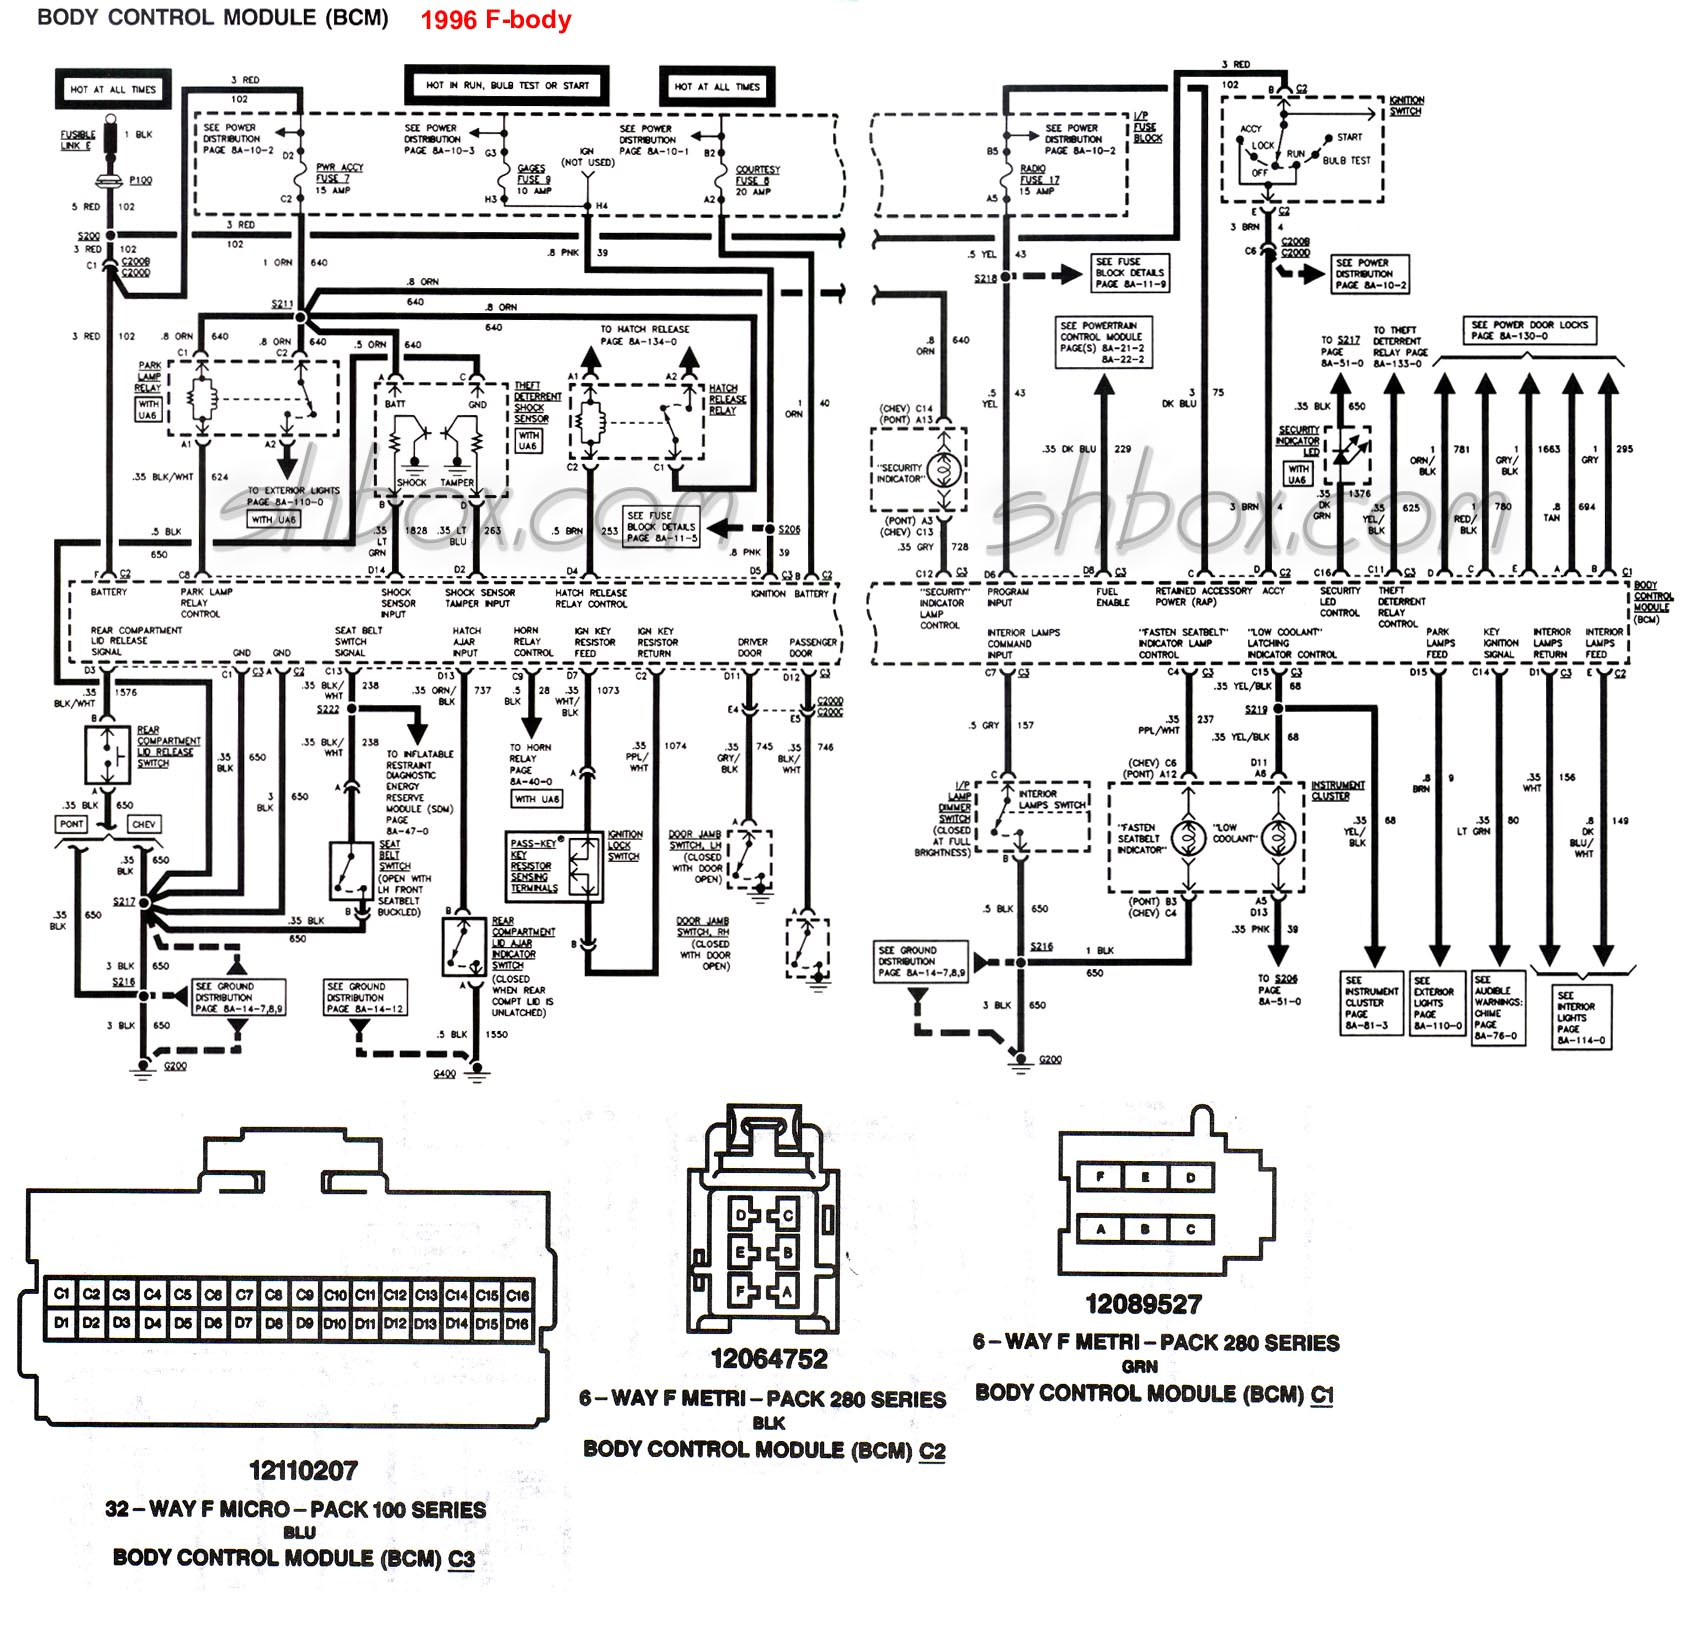 Hyundai Tiburon Fuse Box Diagram 2008 Accent Wiring Library